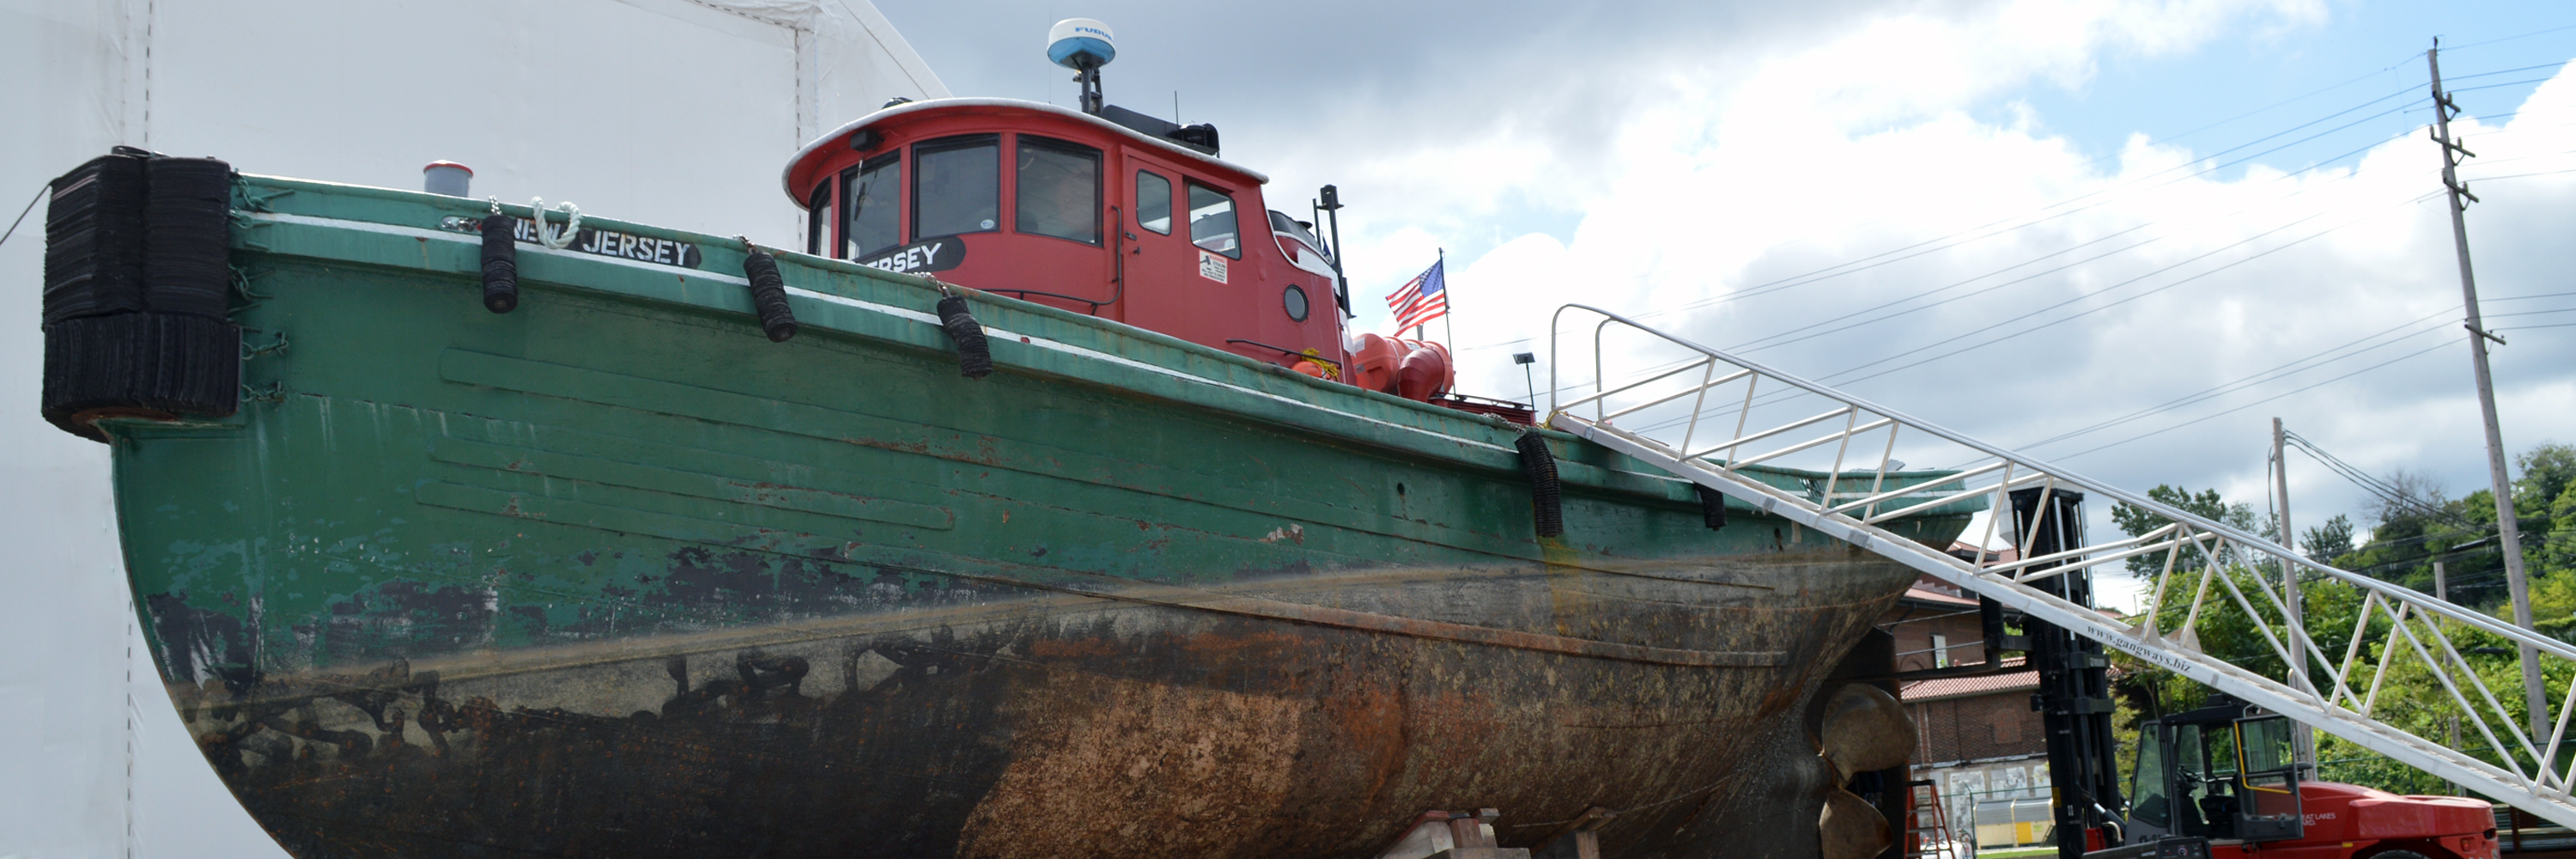 Towing Company Begins Work On 13th Tug As Part Of Its